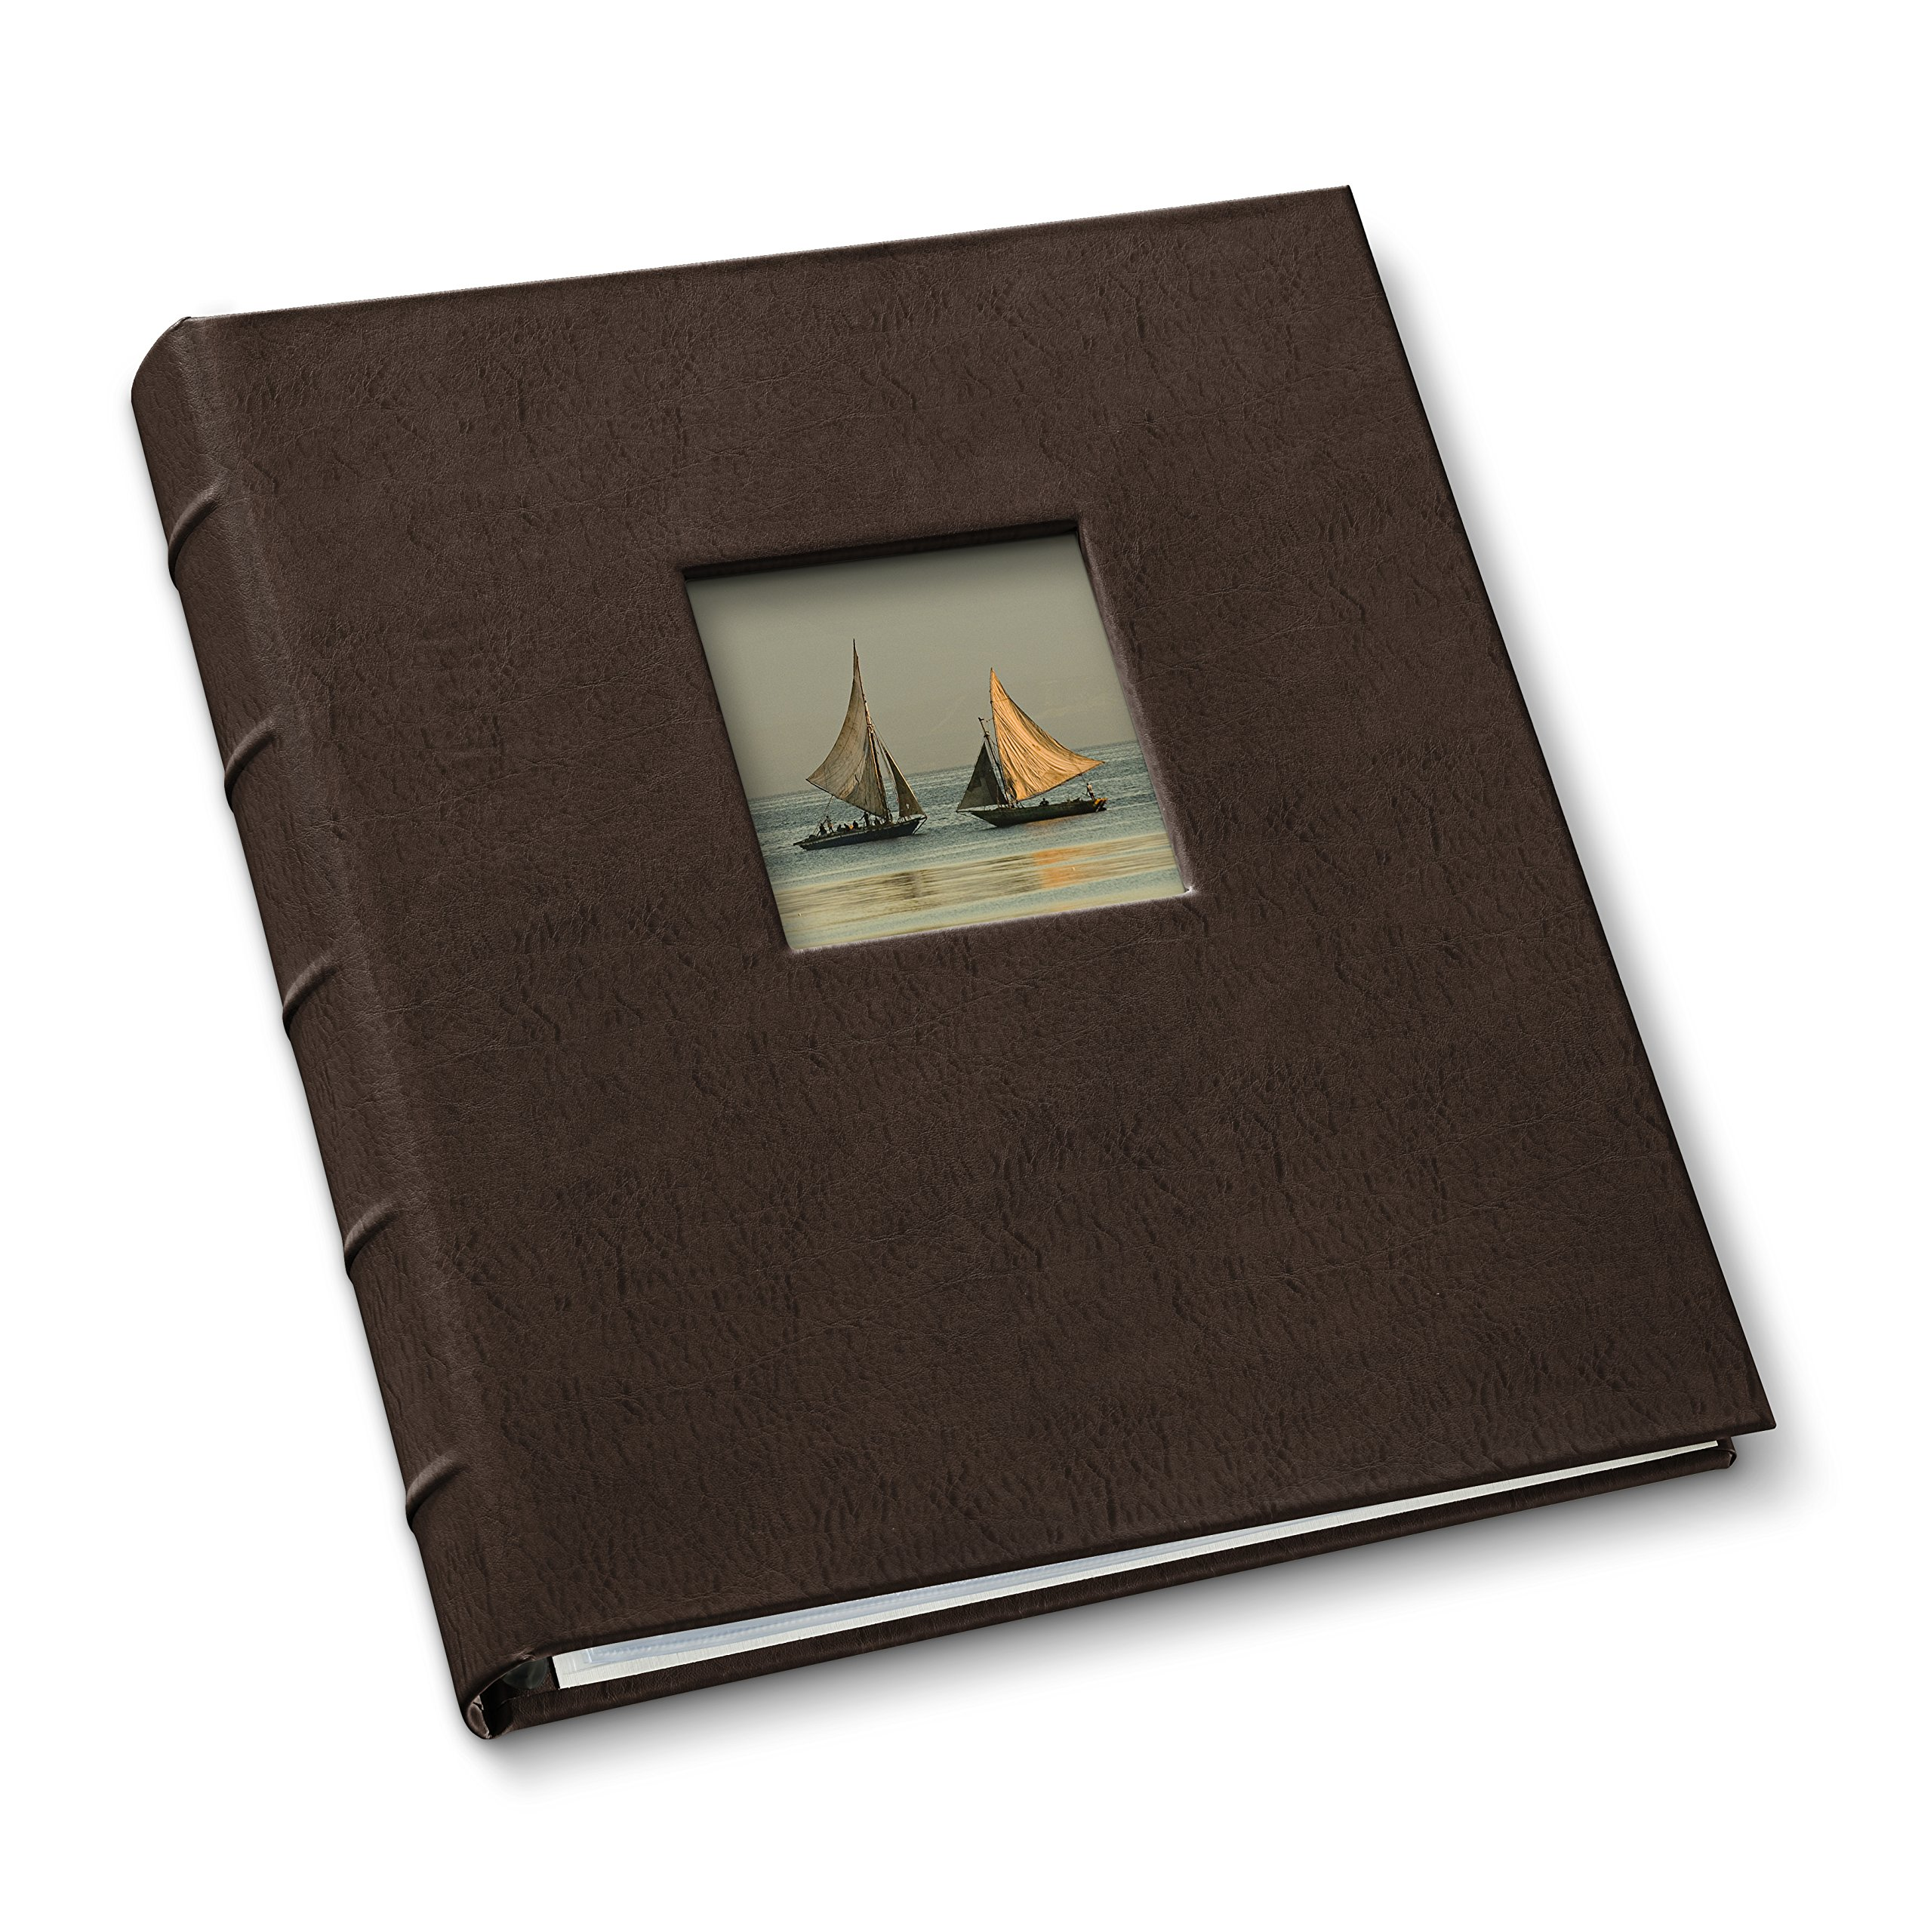 Gallery Leather Presentation Binder 1.25'' With Window and Hubbed Spine Freeport Mocha by Gallery Leather